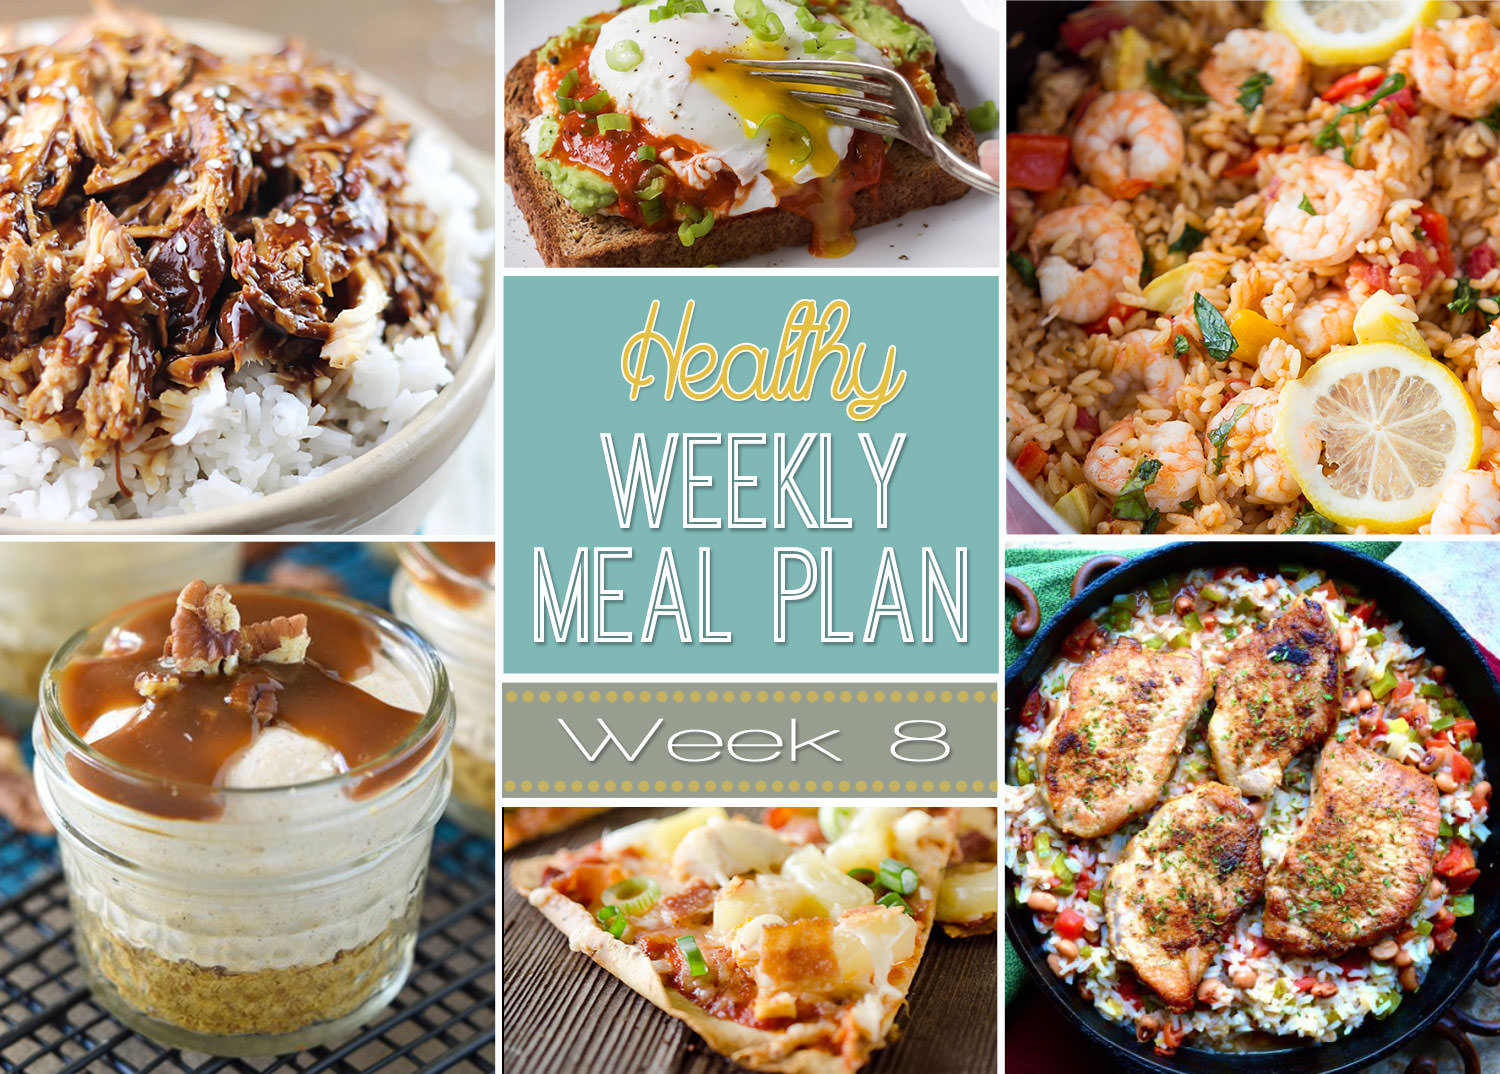 Healthy Weekly Meal Plan Week 8